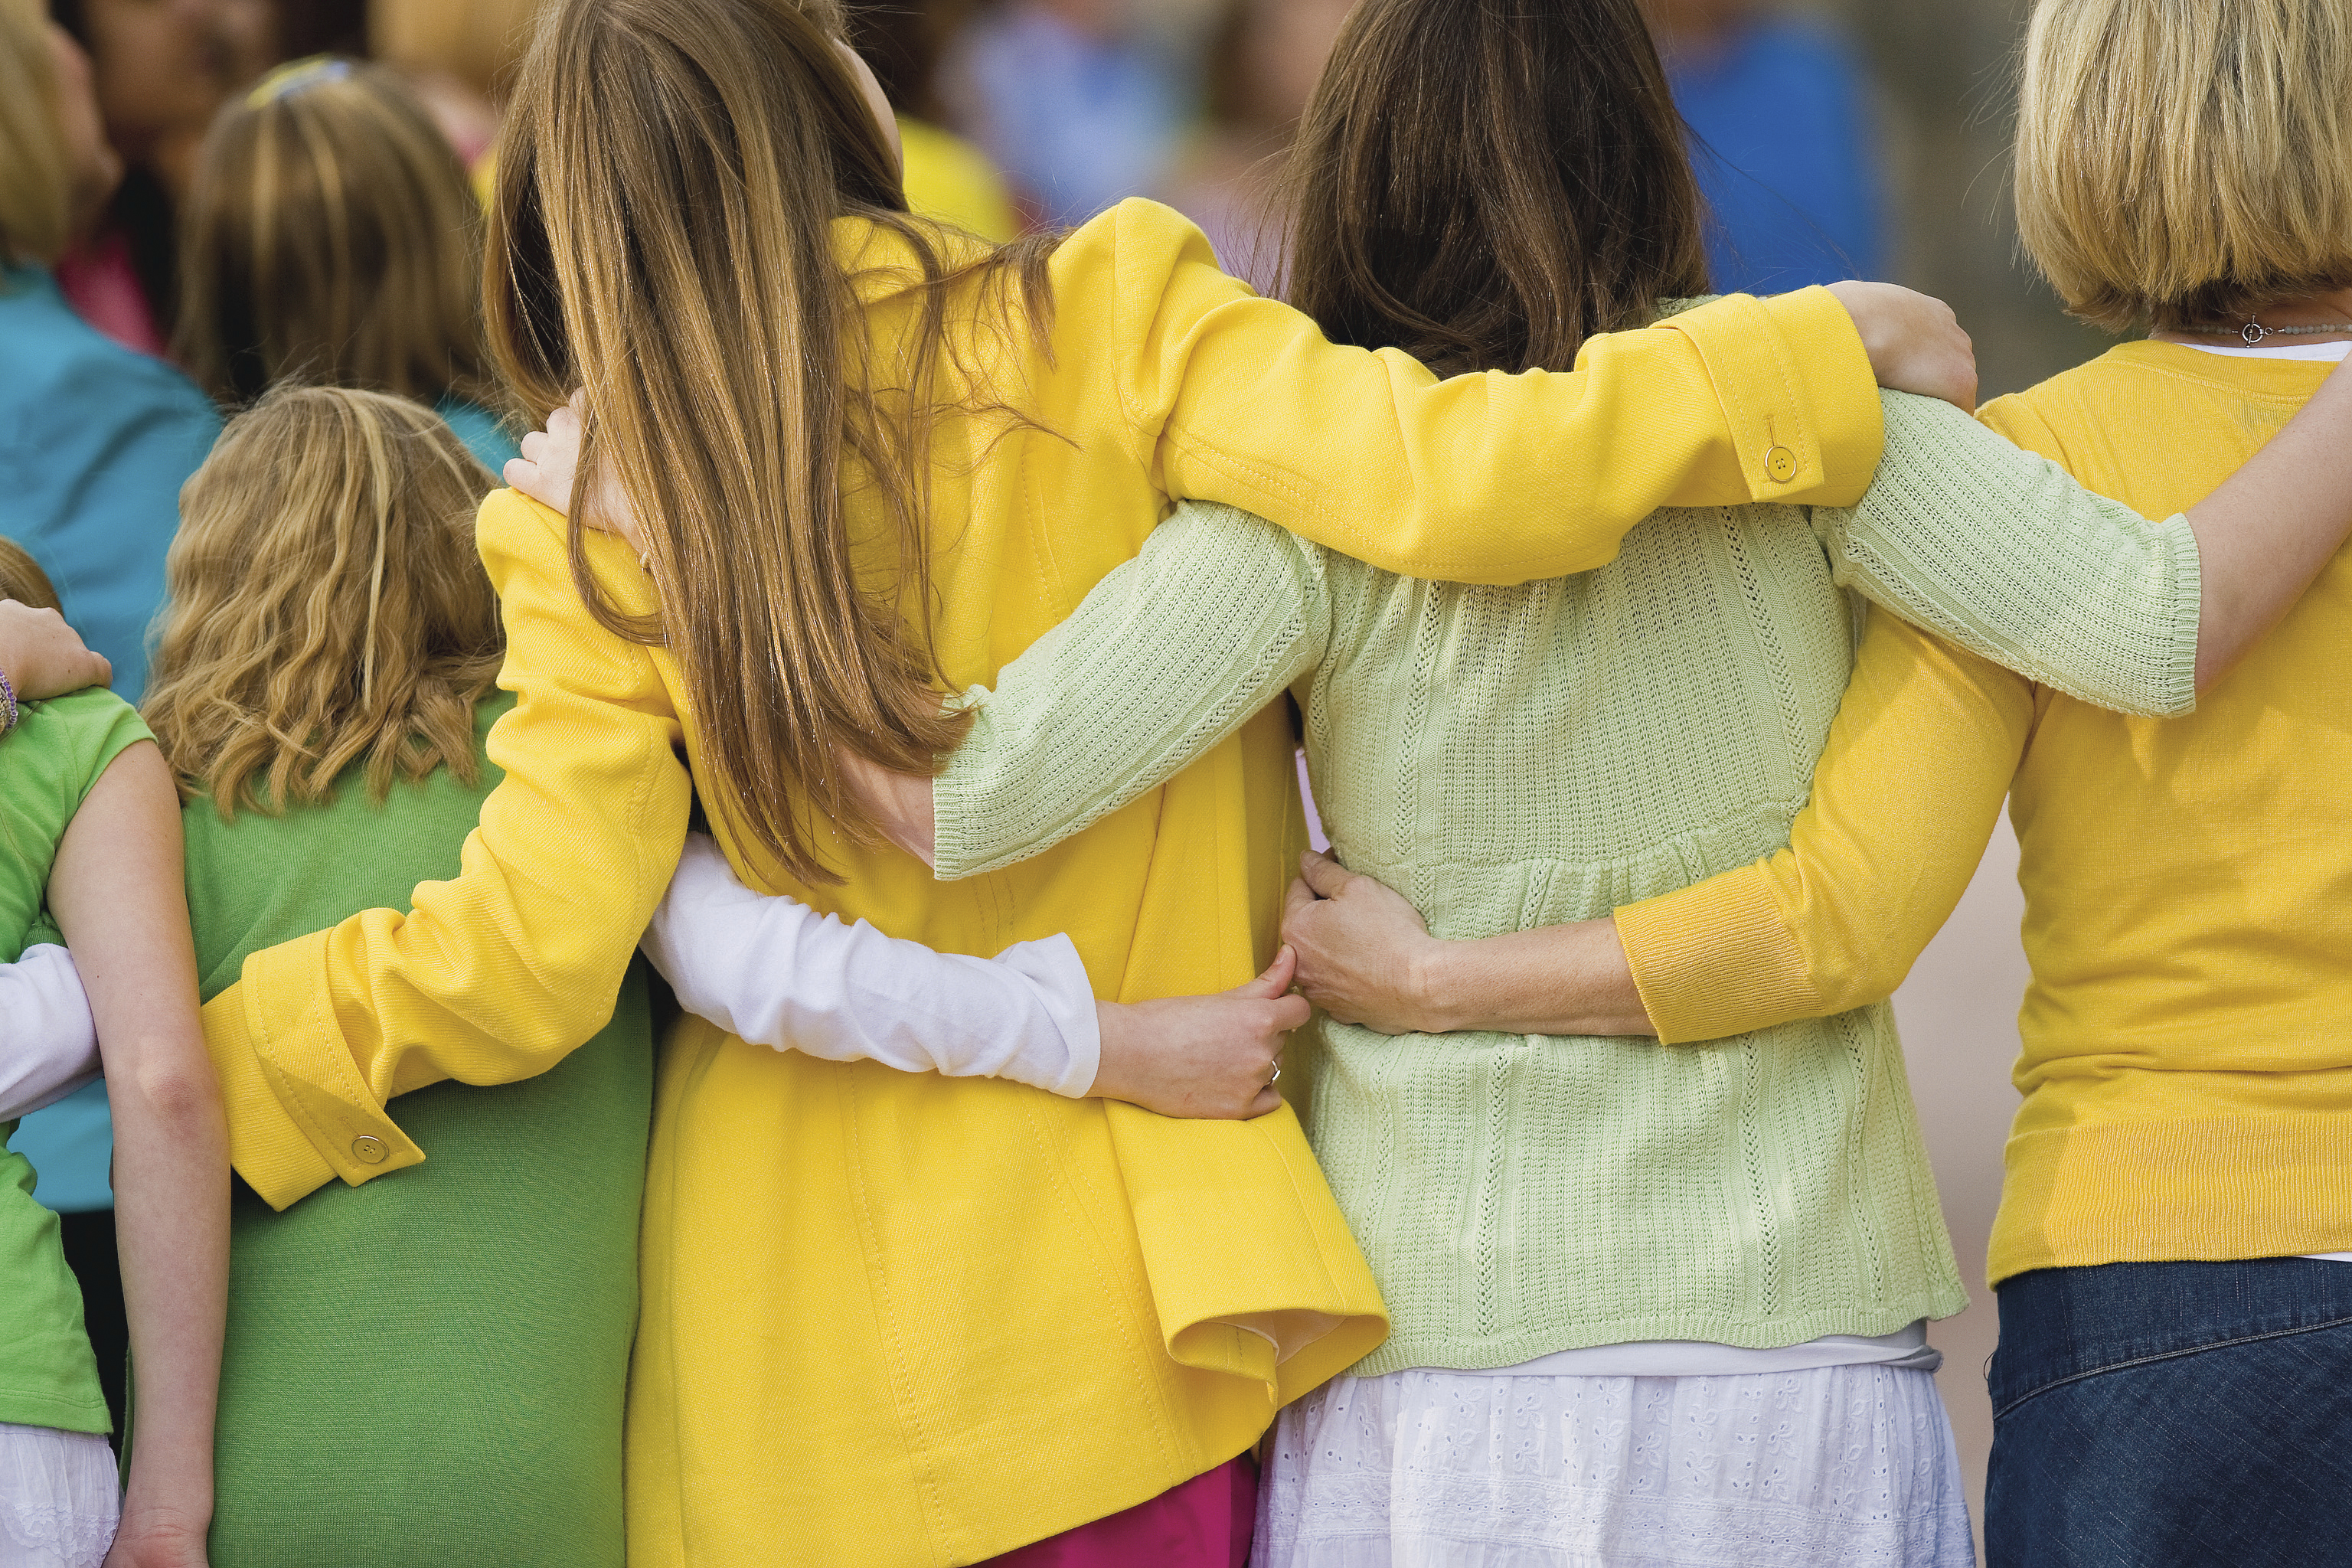 A line of women of different ages linking arms to form a chain.